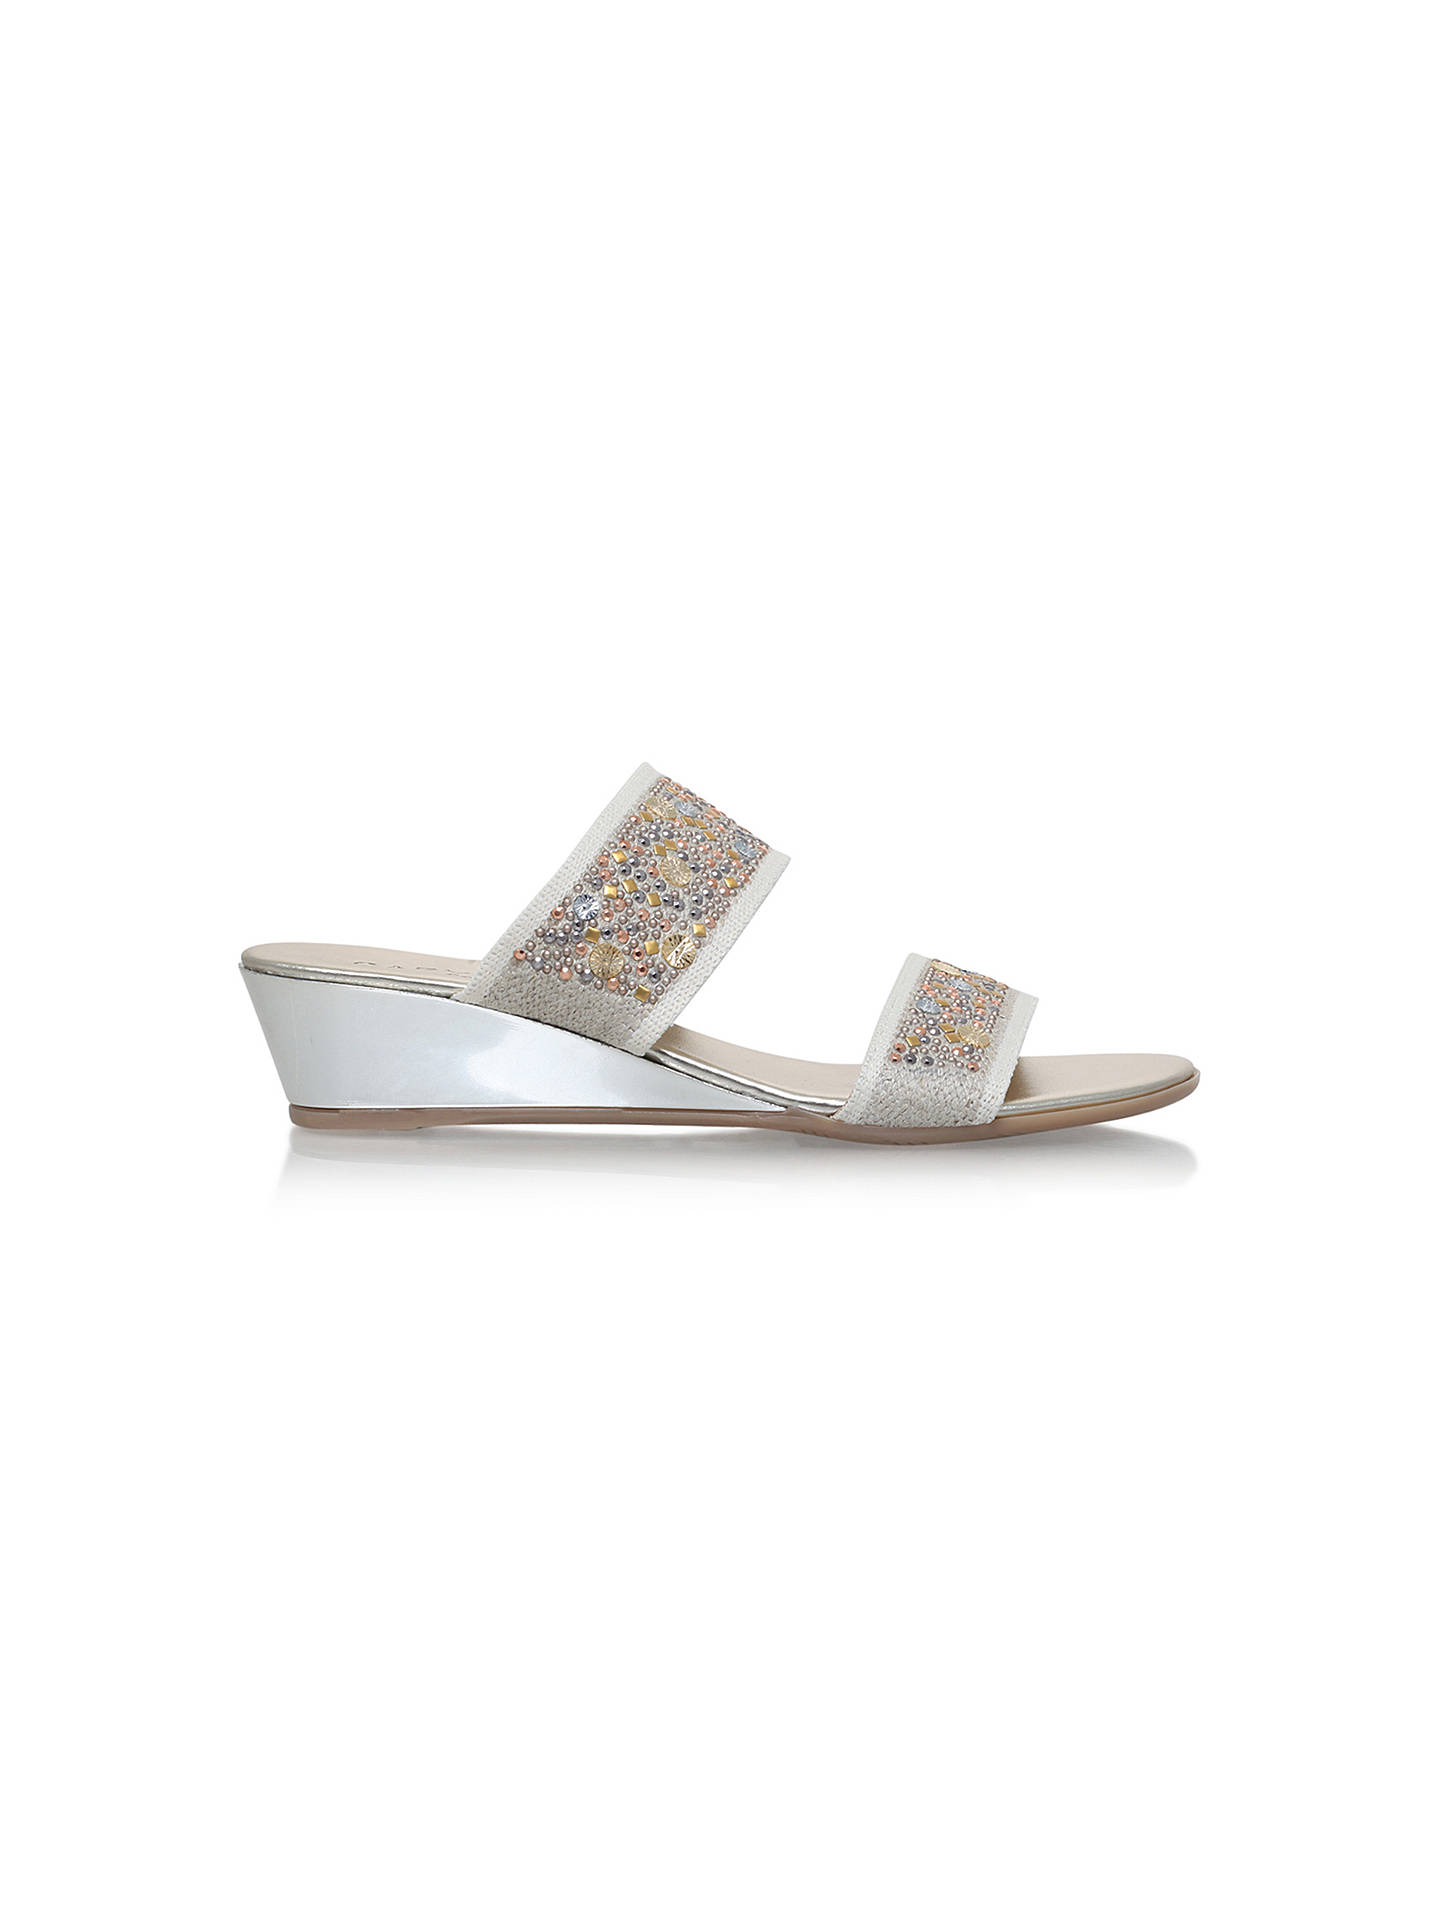 bfff30870453e Buy Carvela Sage Low Heel Mule Sandals, Taupe, 3 Online at johnlewis.com ...